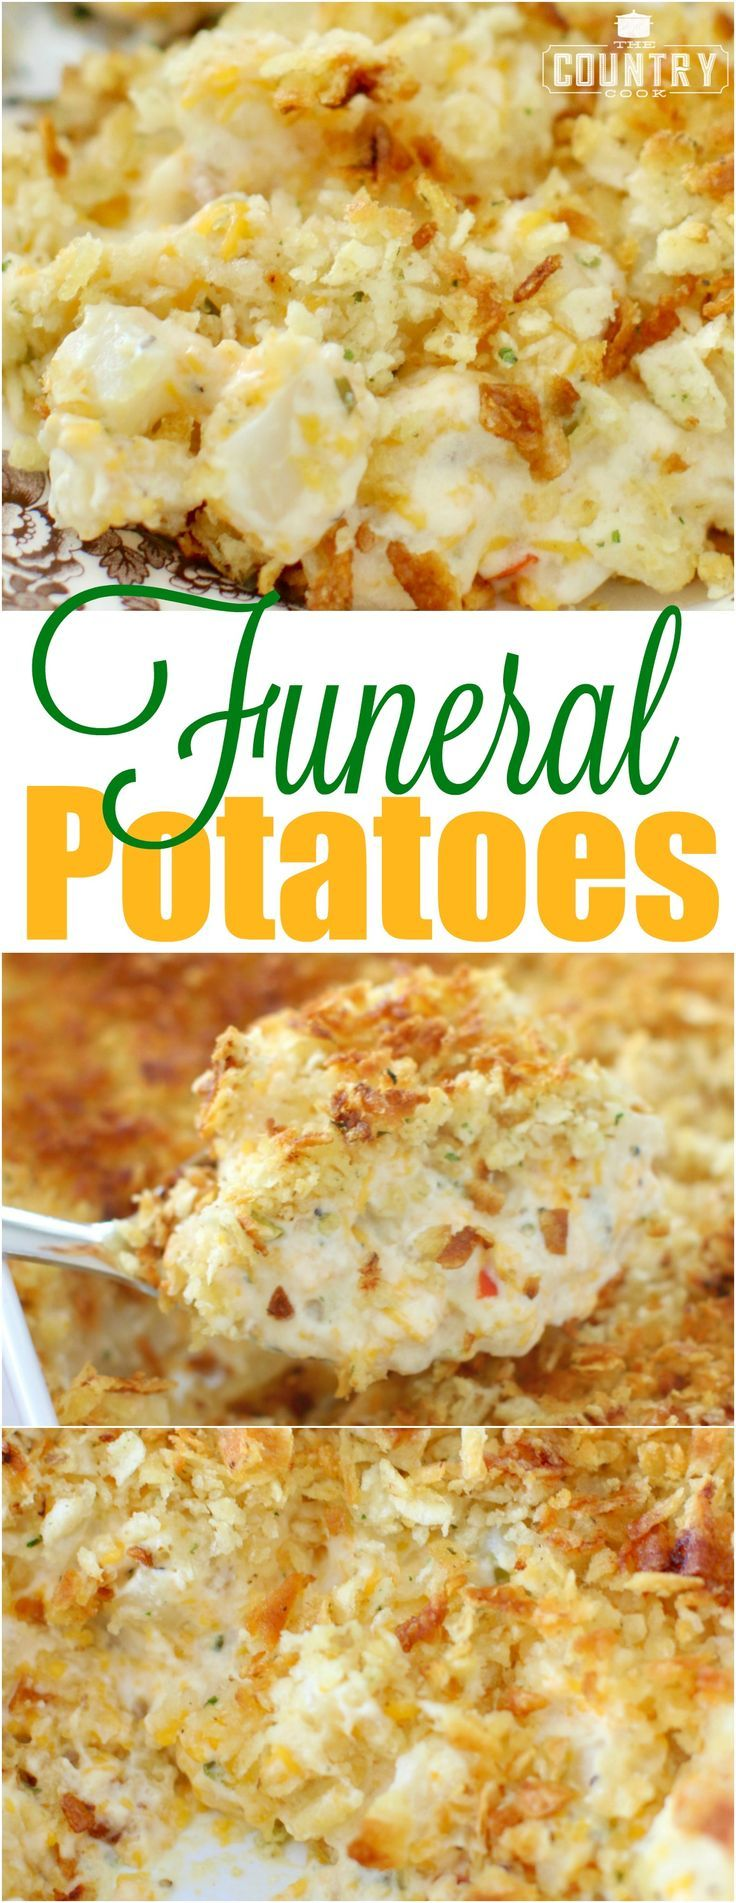 funeral potatoes recipe from the country cook | recipes from our